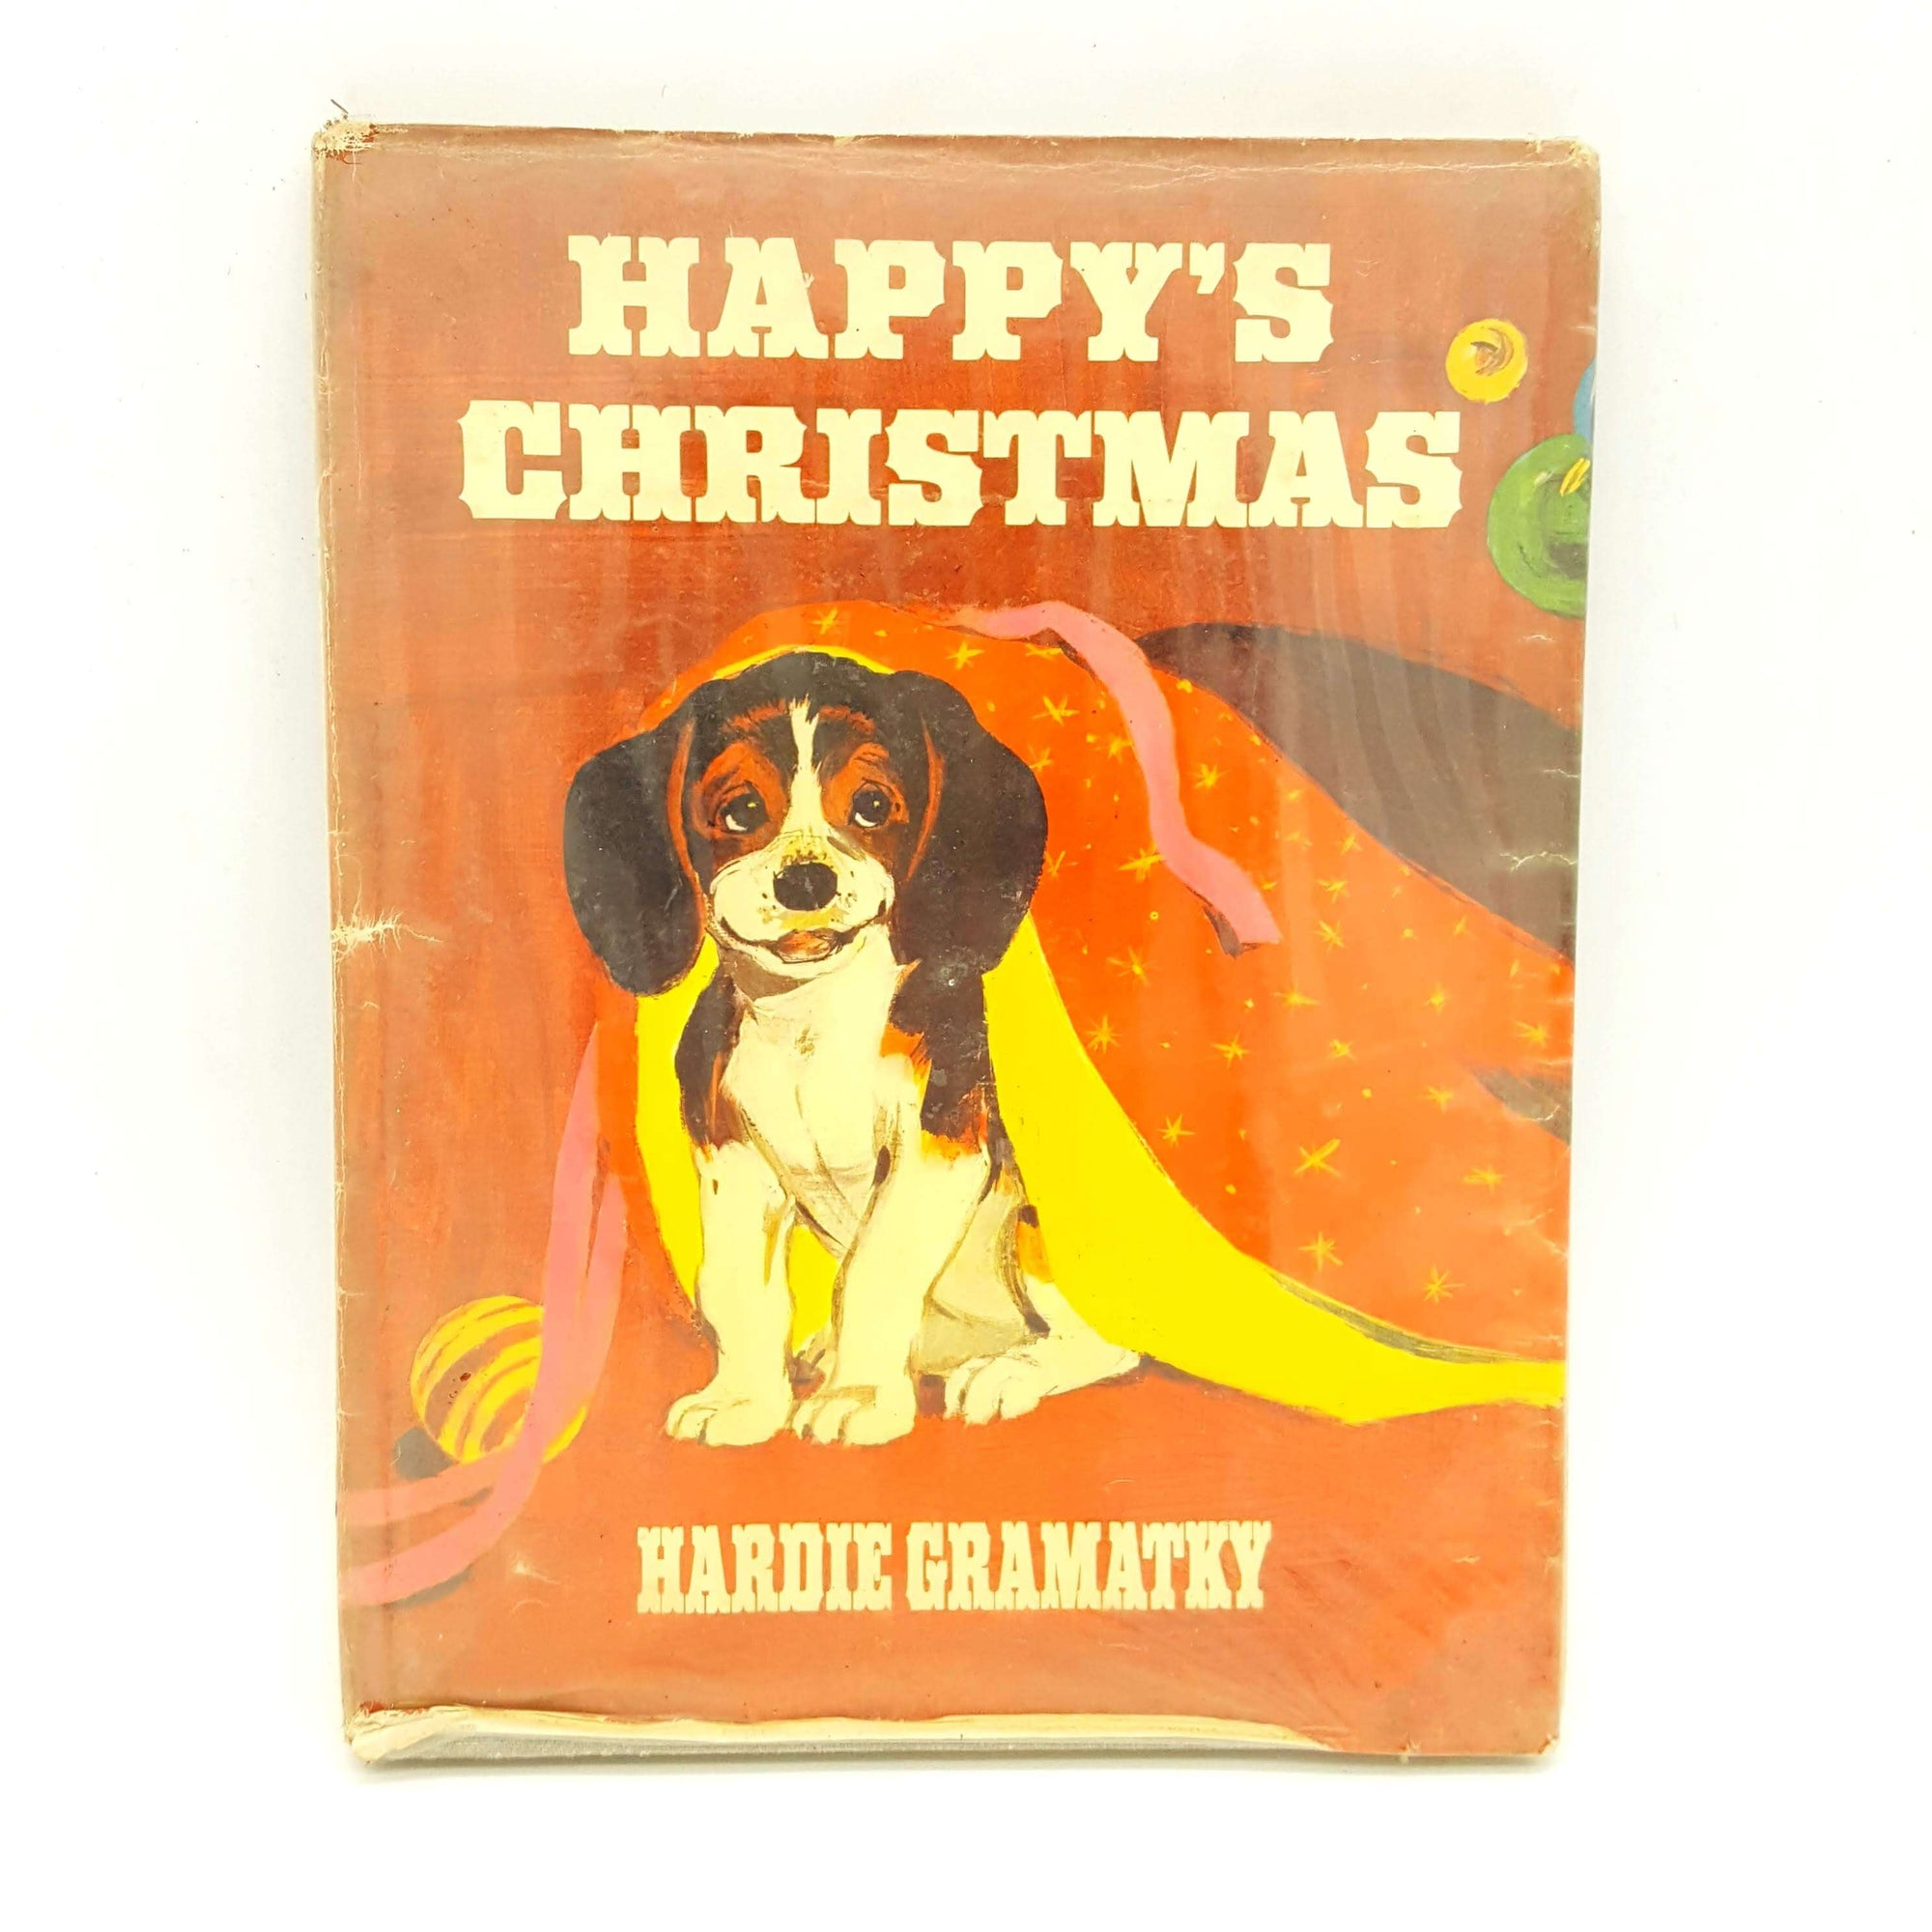 Happy's Christmas by Hardie Gramatky 1970 Country House Library